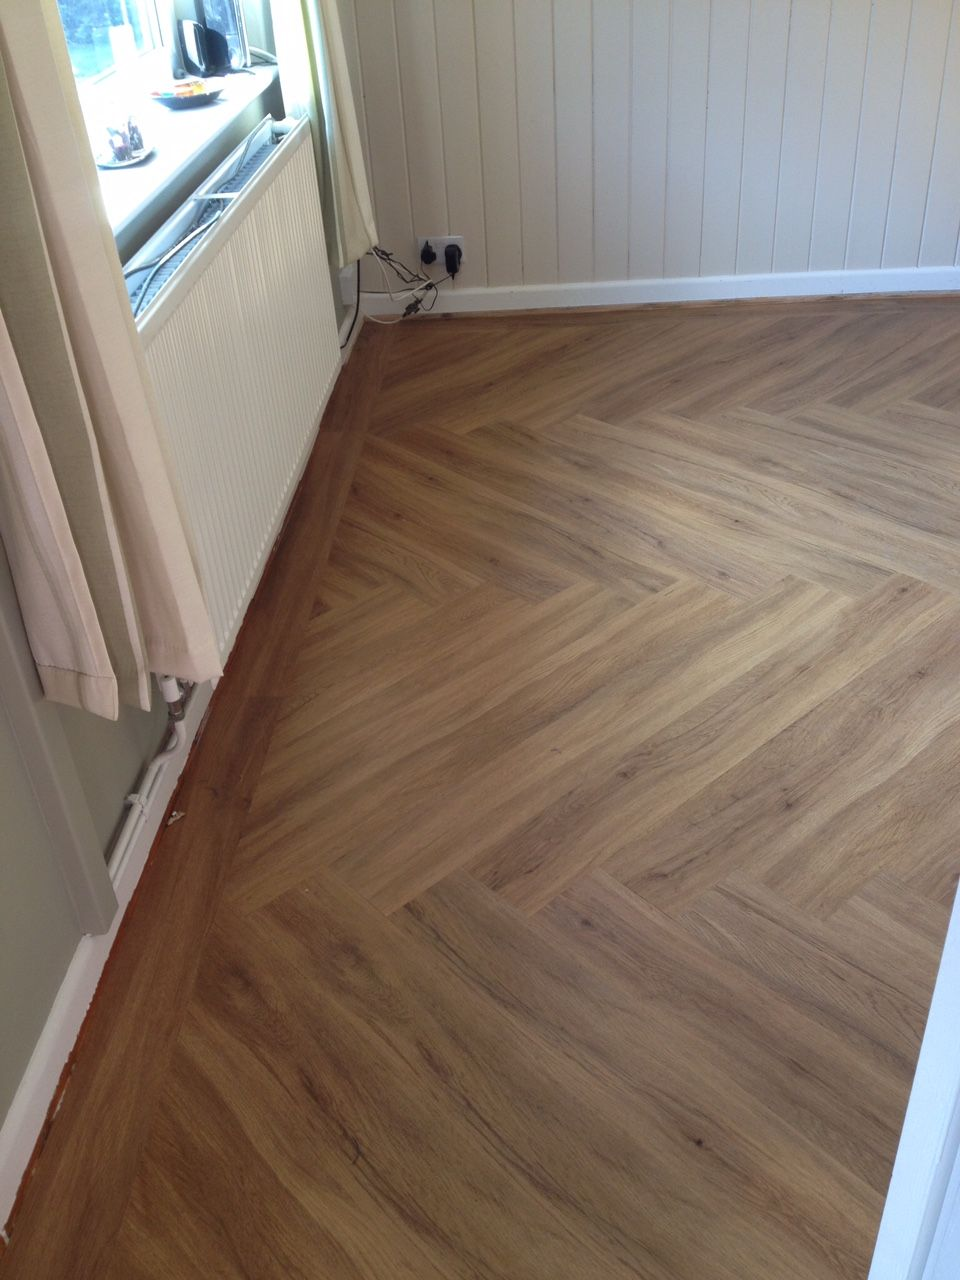 Polyflor Colonia Schoolhouse Oak fitted in a herringbone